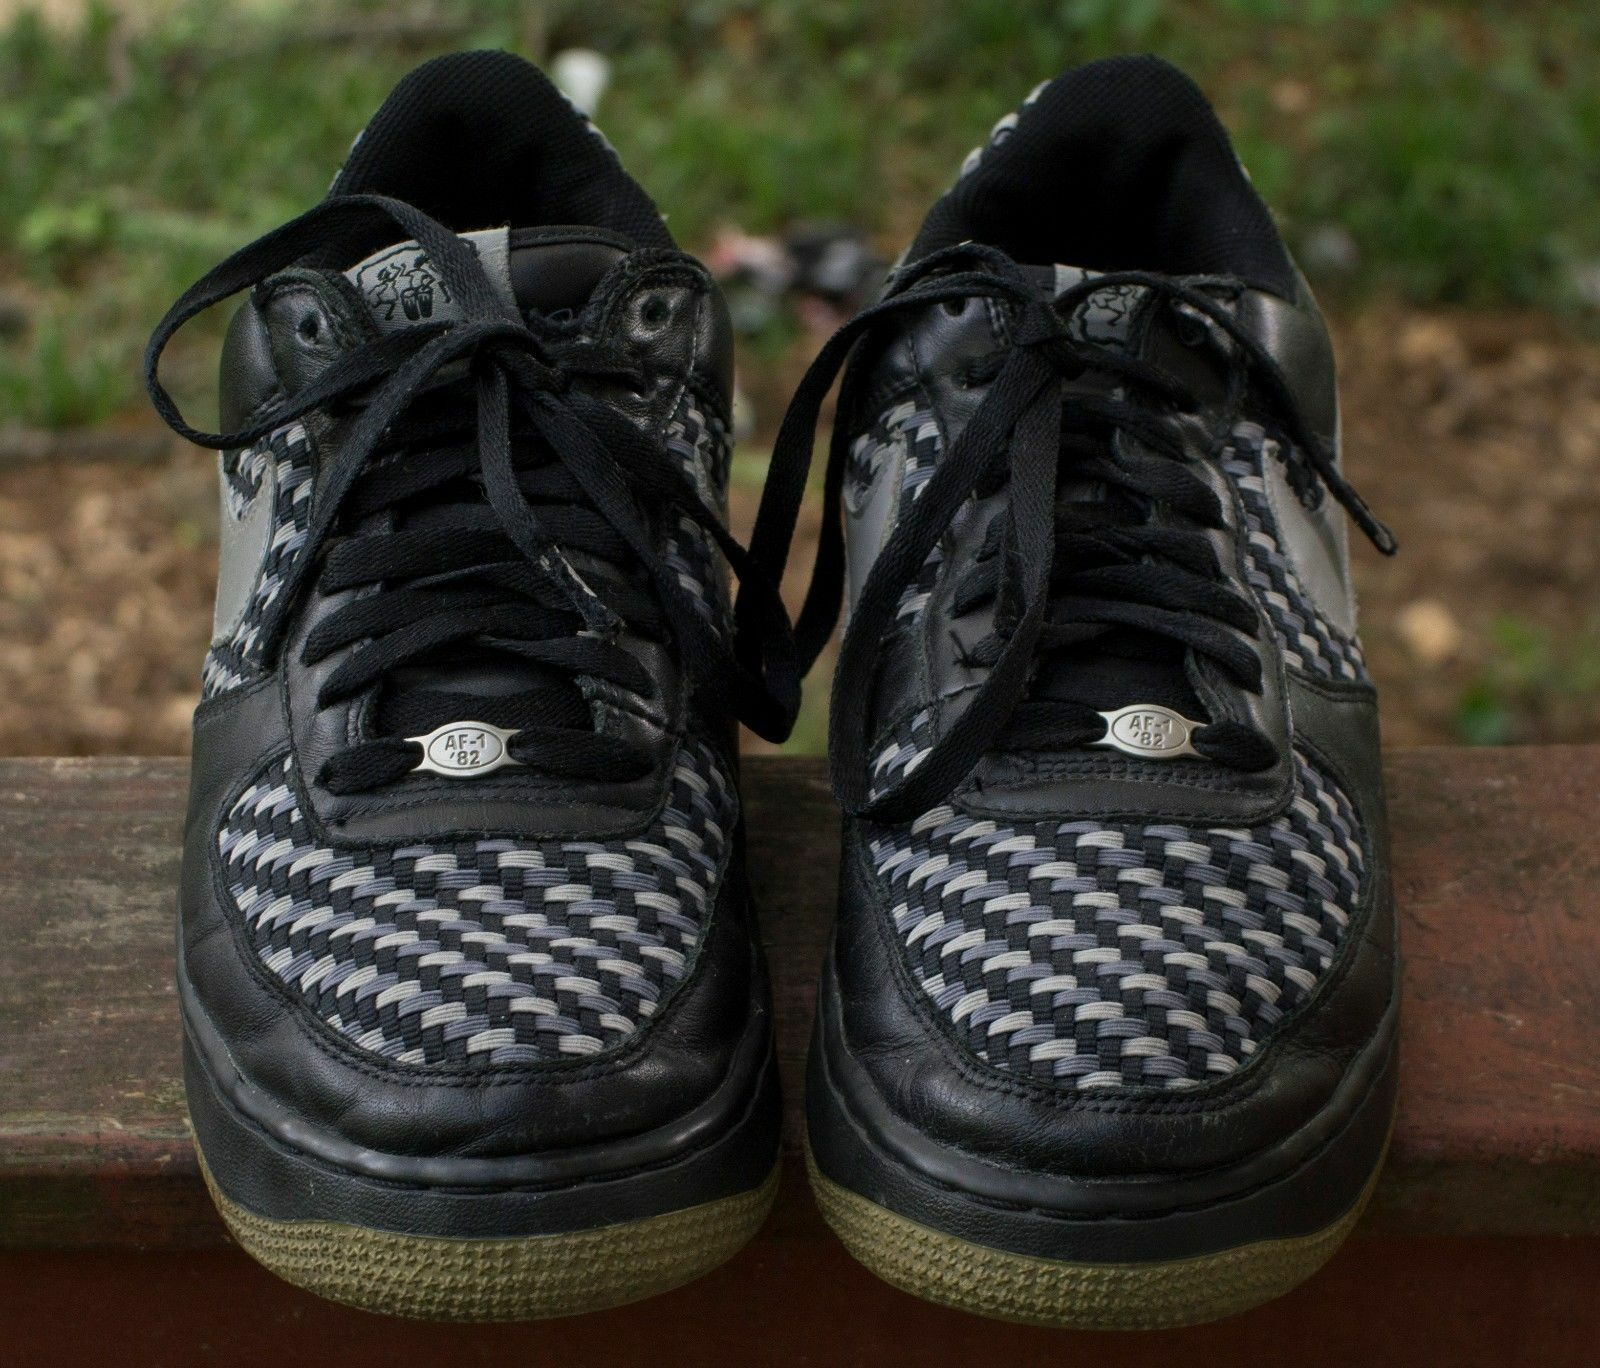 NIKE Air Force 1 Premium BHM 309096-001 Medium Greym LT Graphite Sz 11